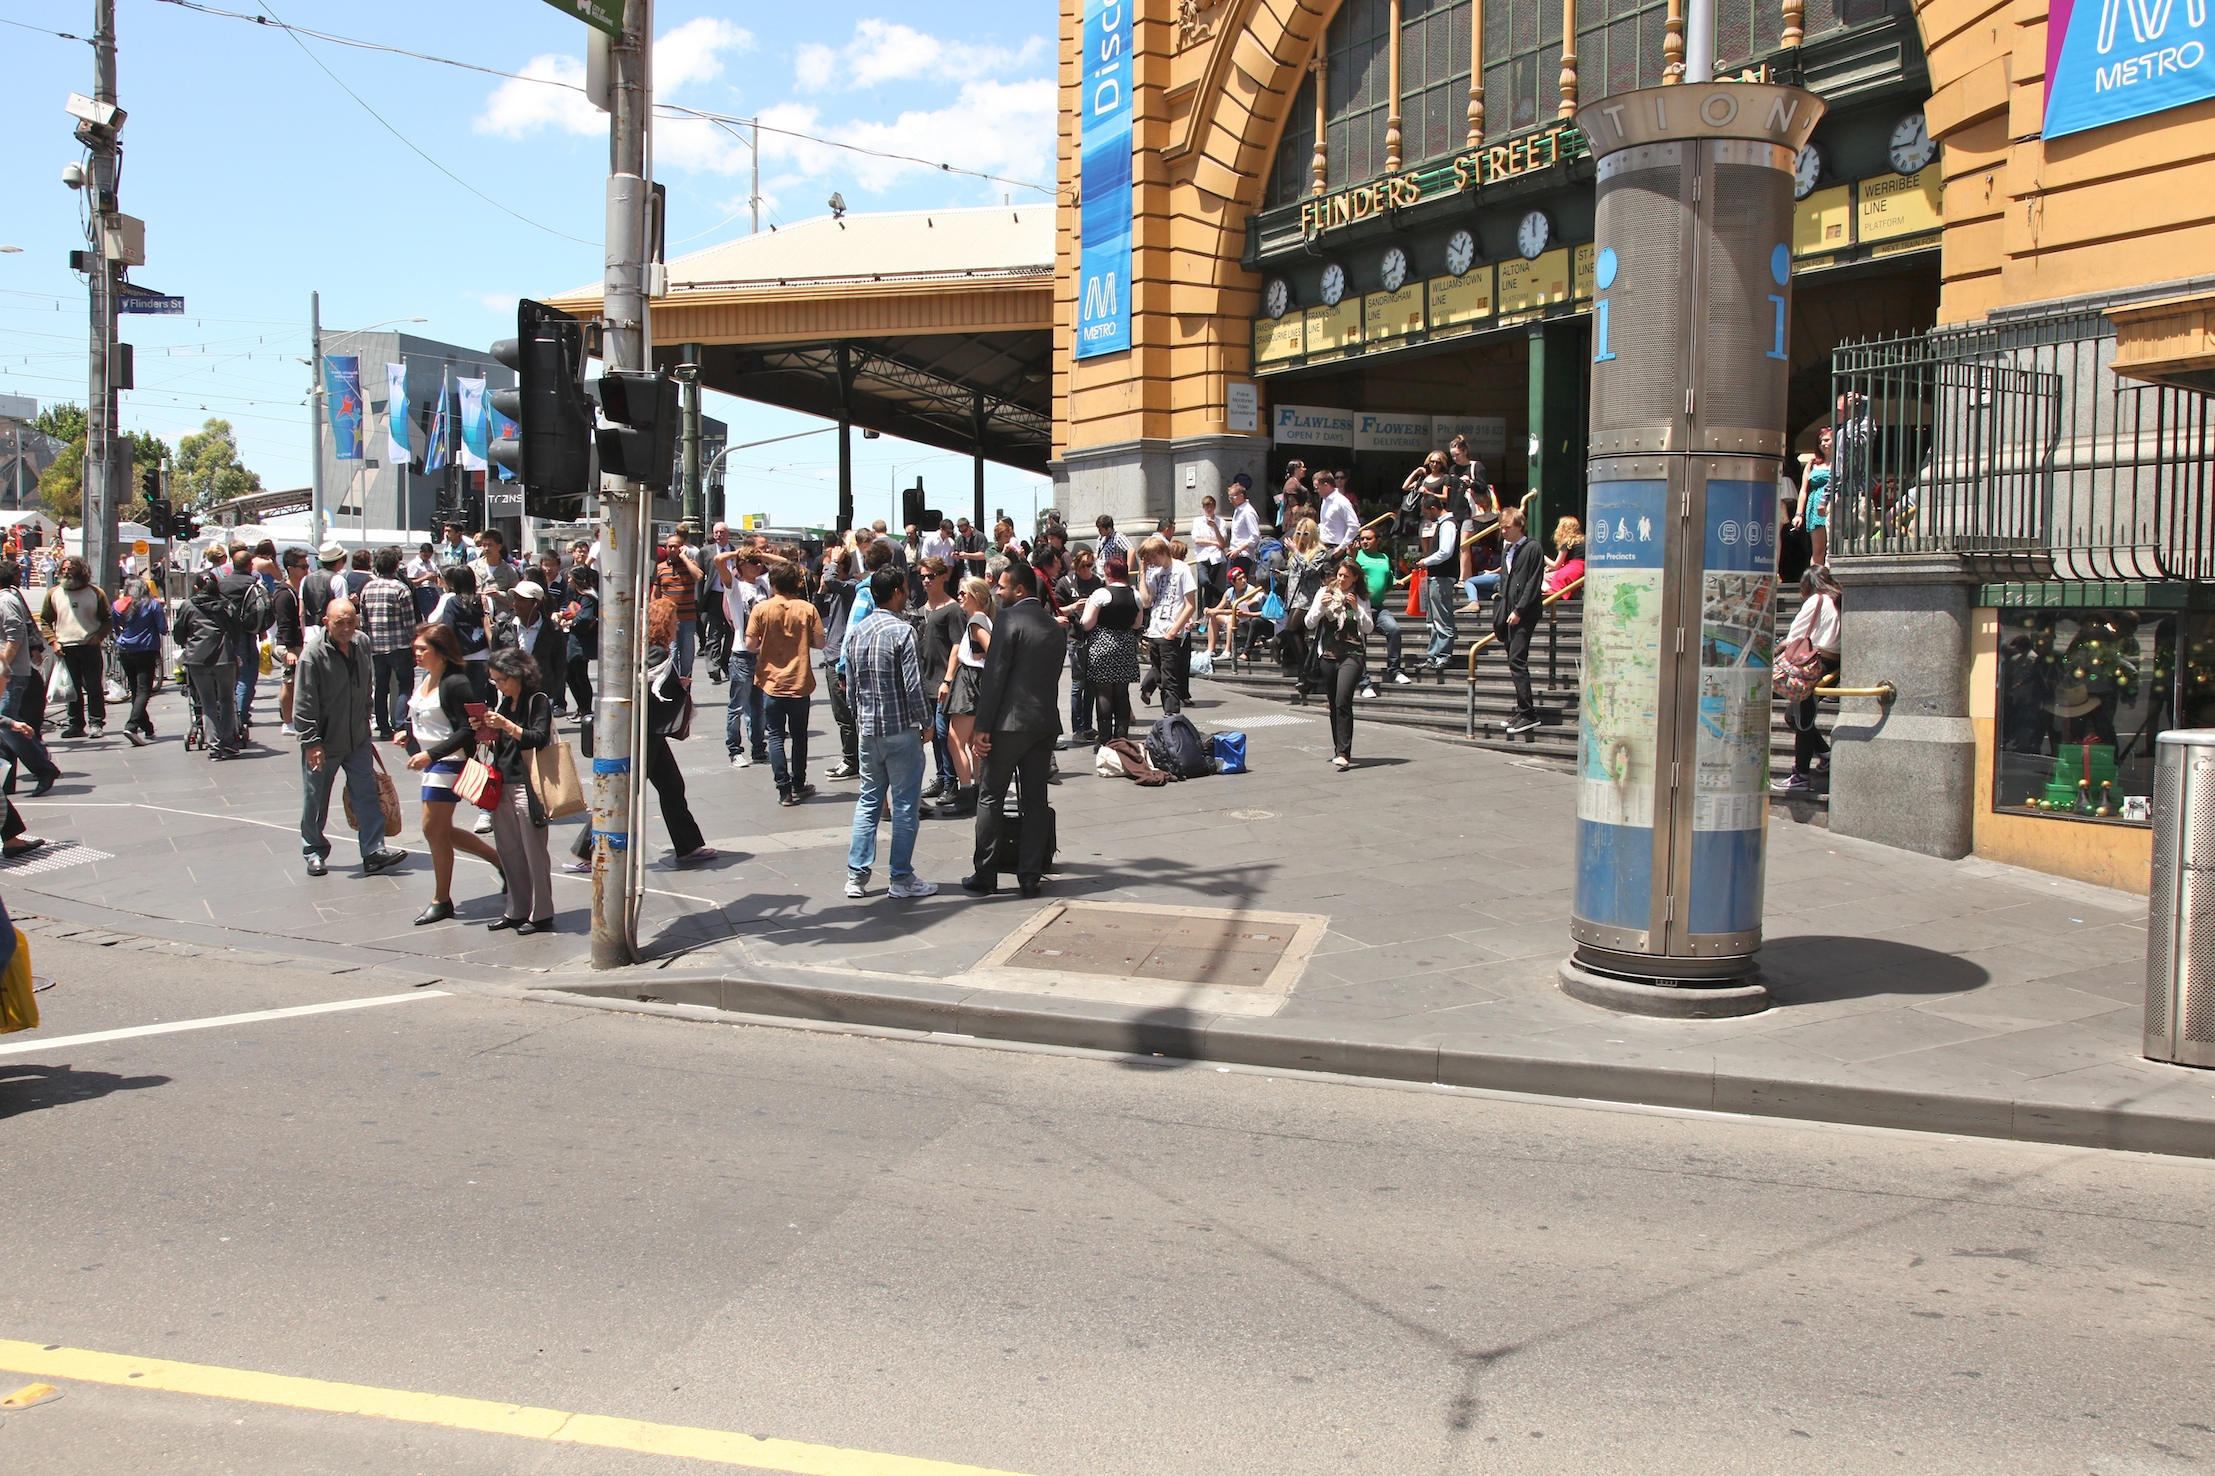 Fig 10: The wide footpath in front of the Flinders Street train station in Melbourne – also a popular meeting place